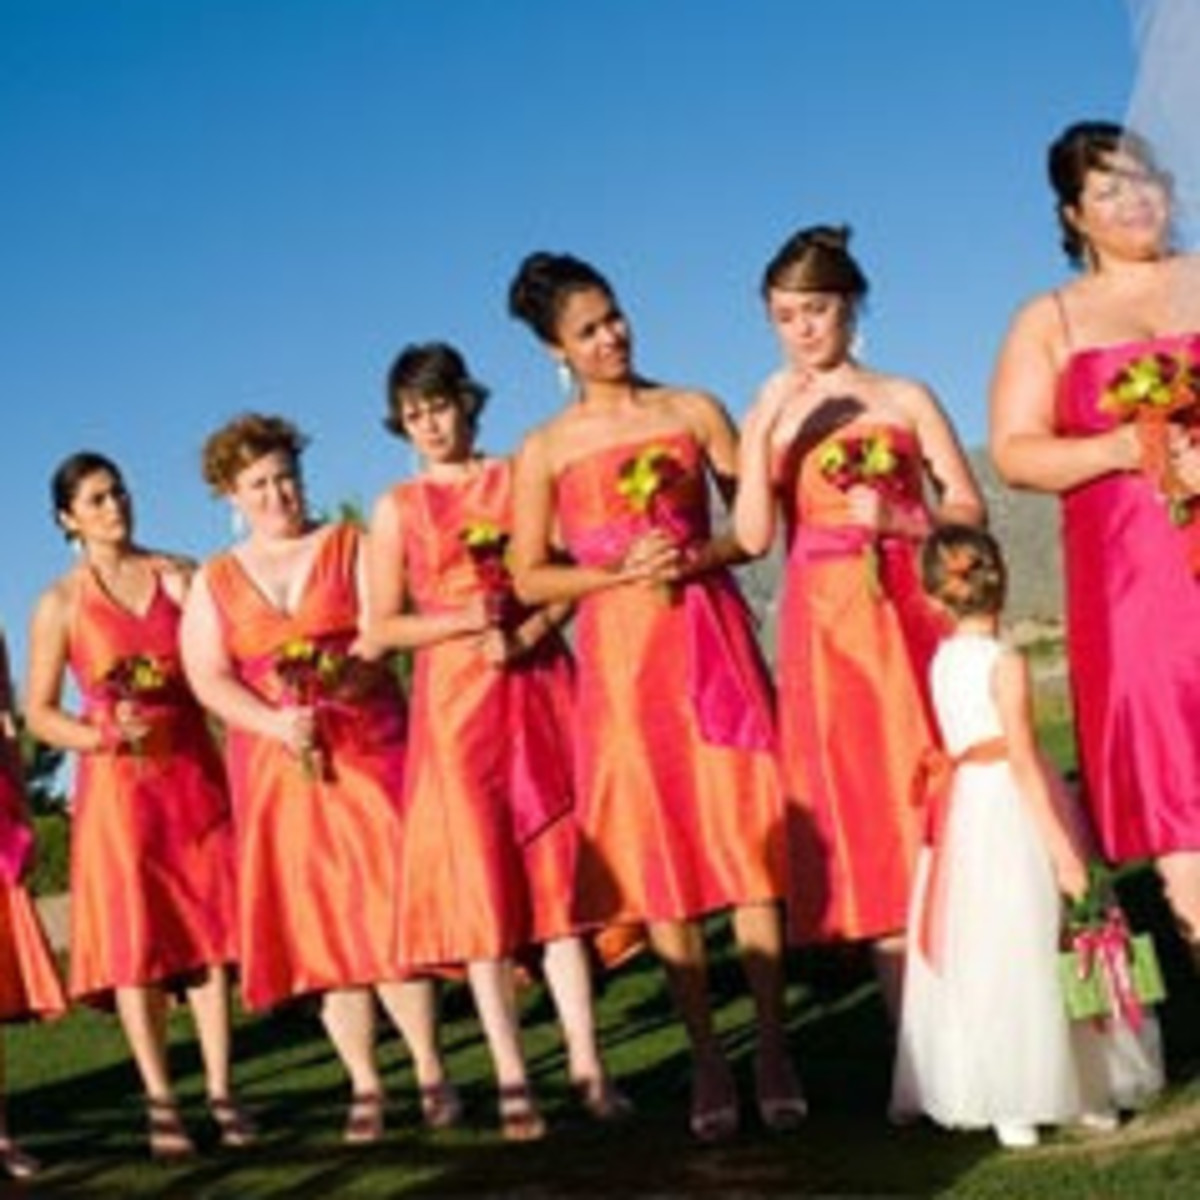 Victoria & Fermin's Wedding from The Knot